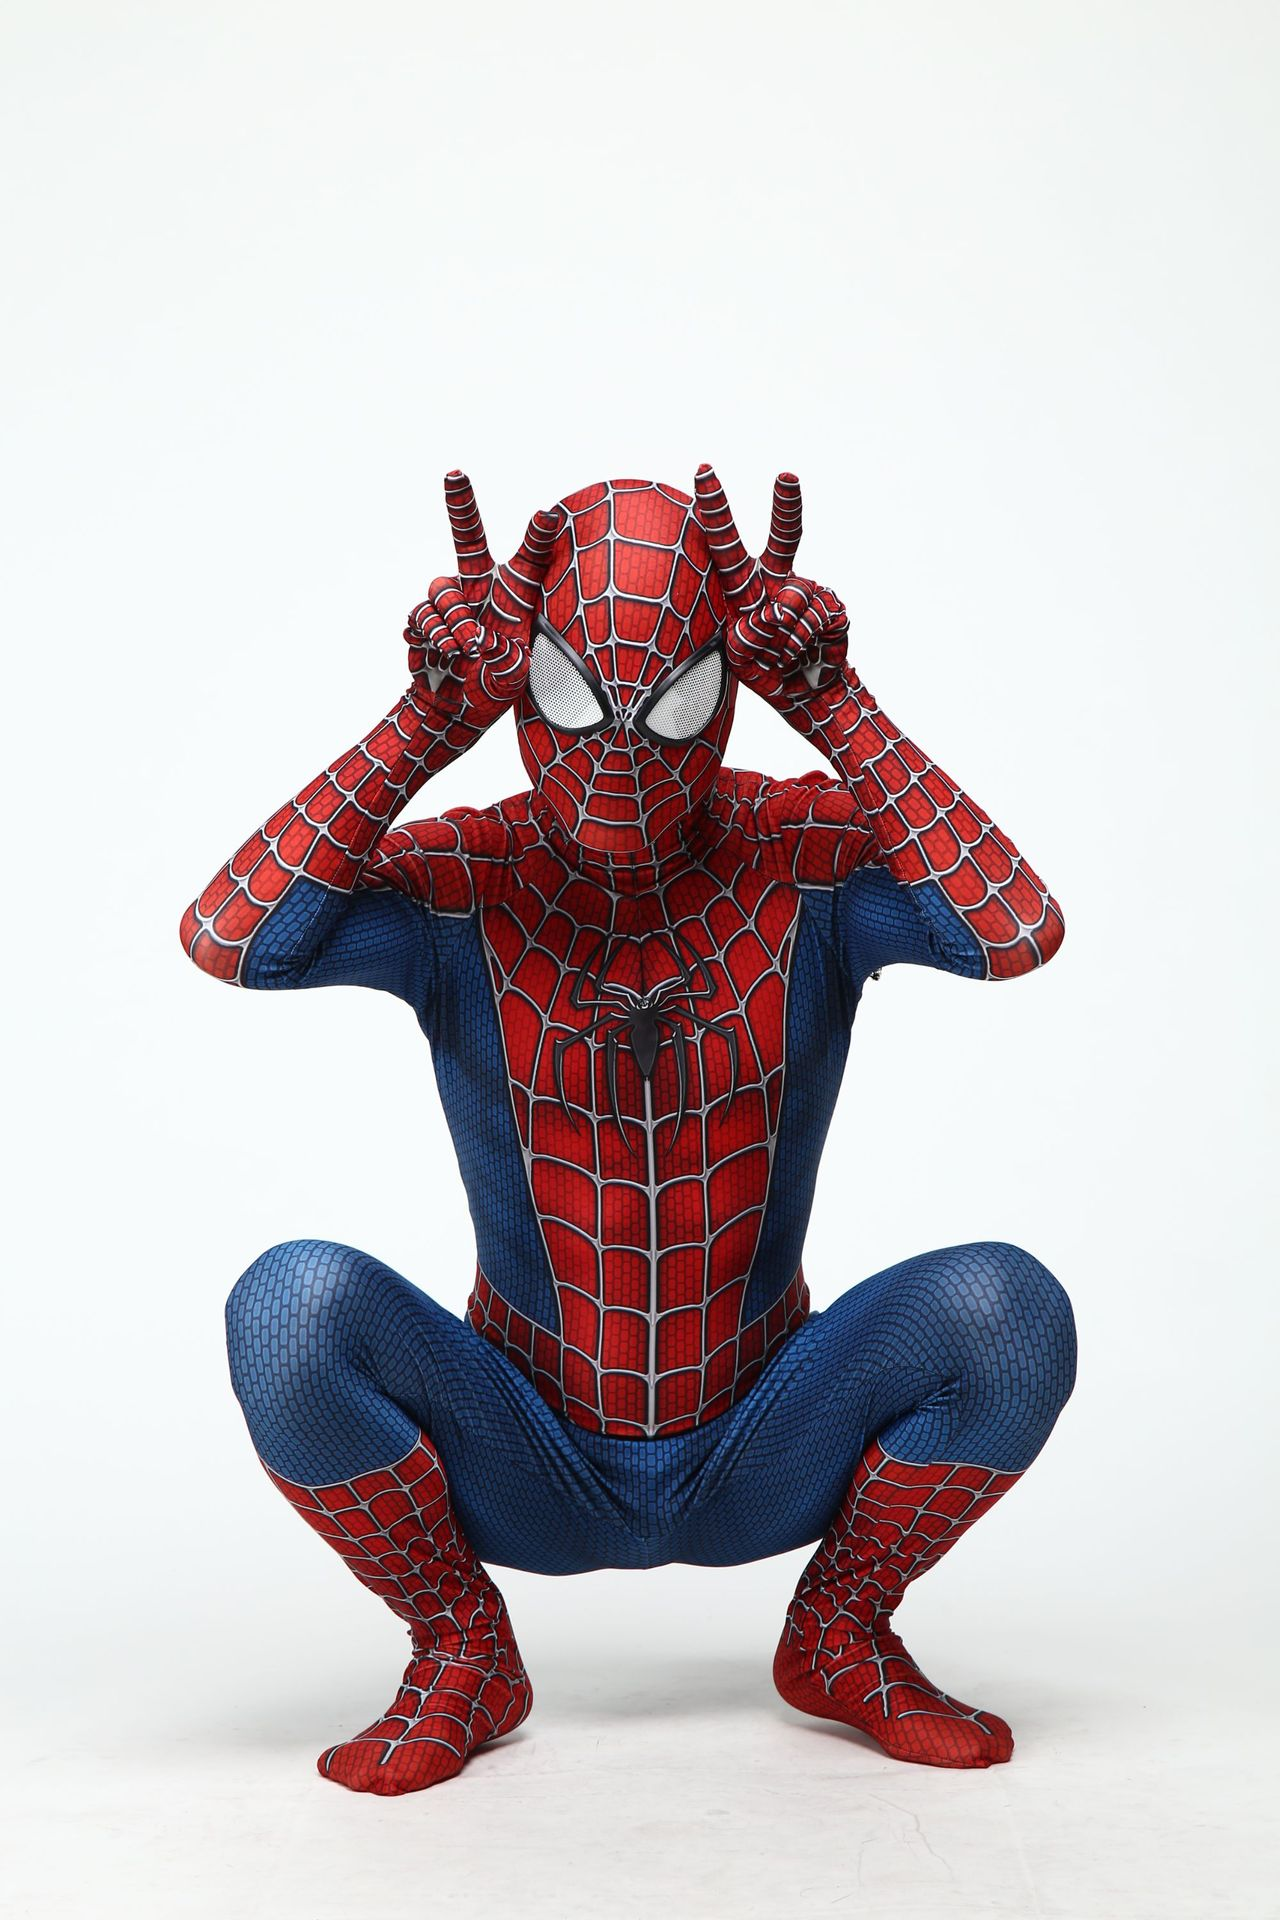 Adult Kids Spider Man 3 Raimi Spiderman Cosplay Costume 3D Print Spandex Zentai Superhero Bodysuit Suit Jumpsuits